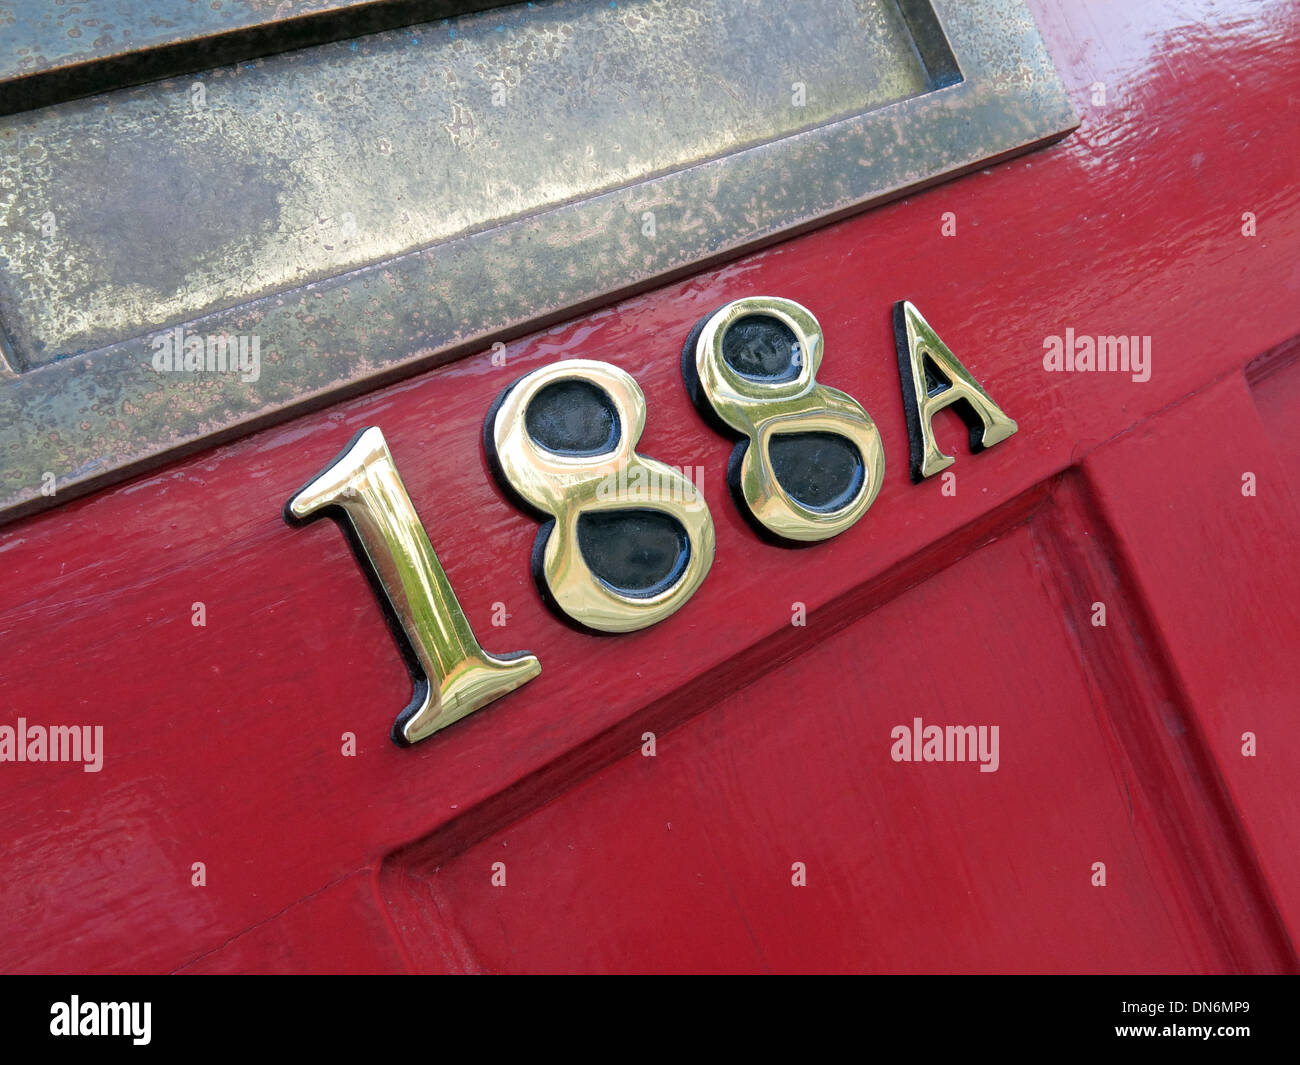 number,numbers,Gotonysmith,Buy Pictures of,Buy Images Of